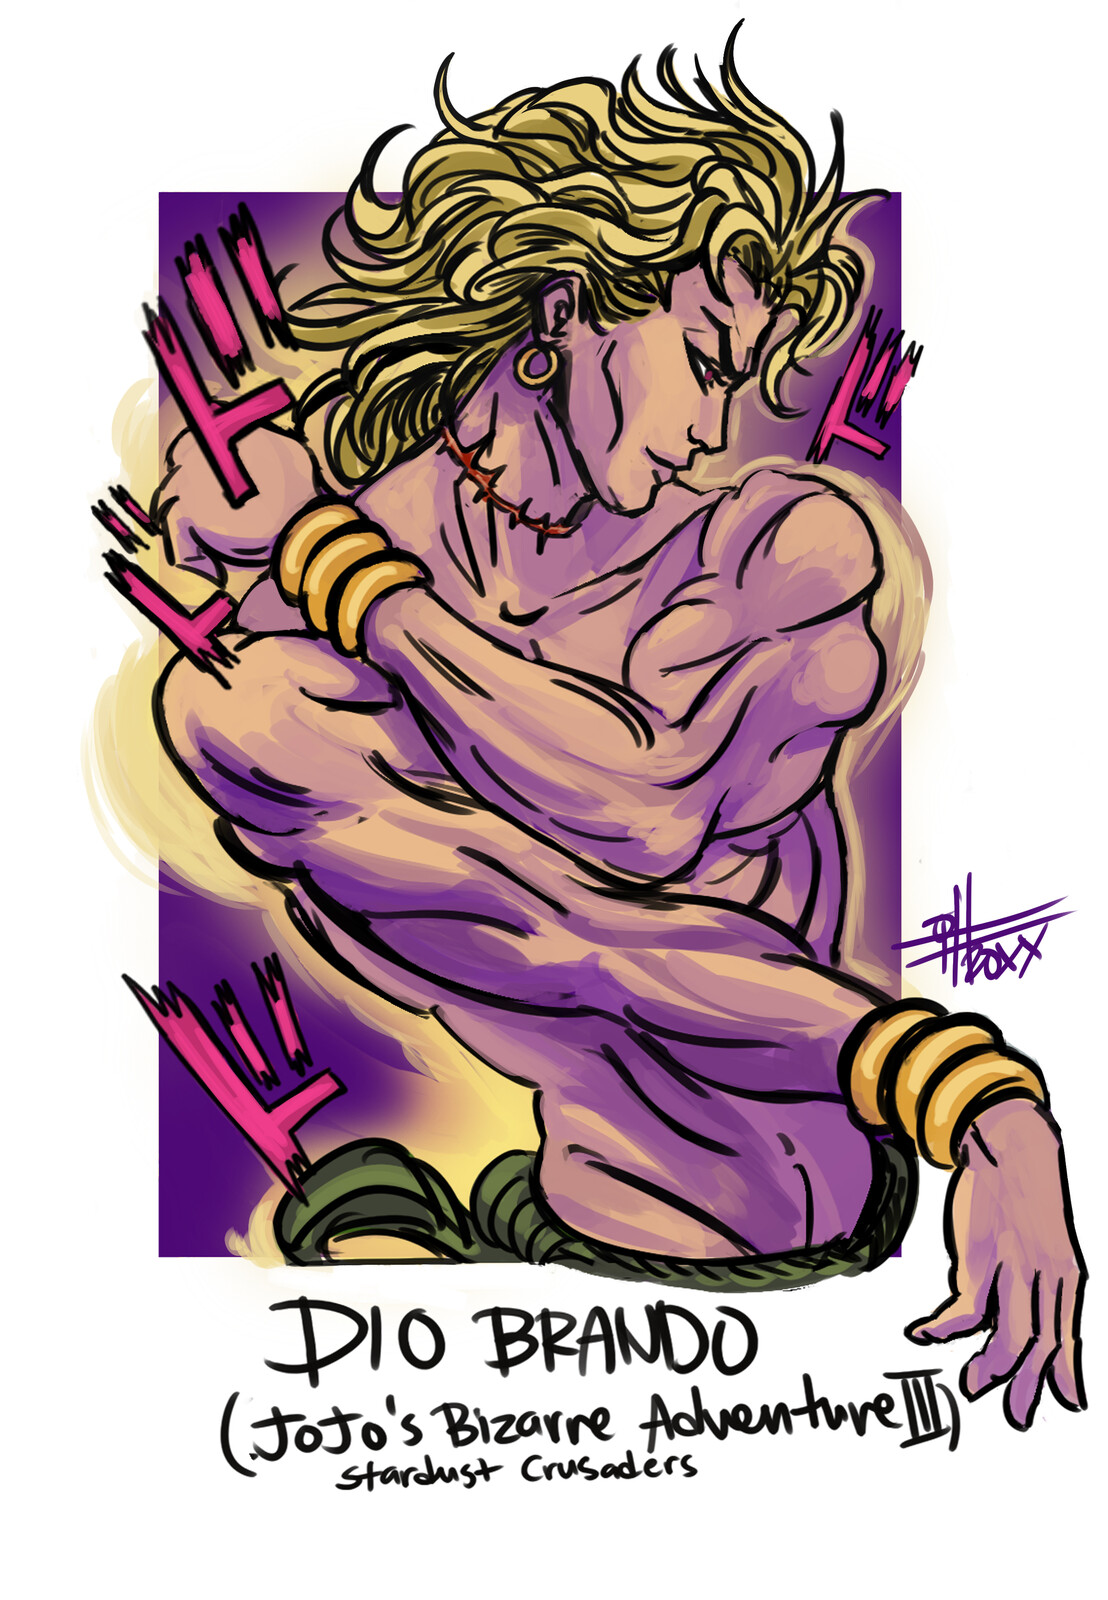 Dio Brando from JJBA 3: Stardust Crusaders